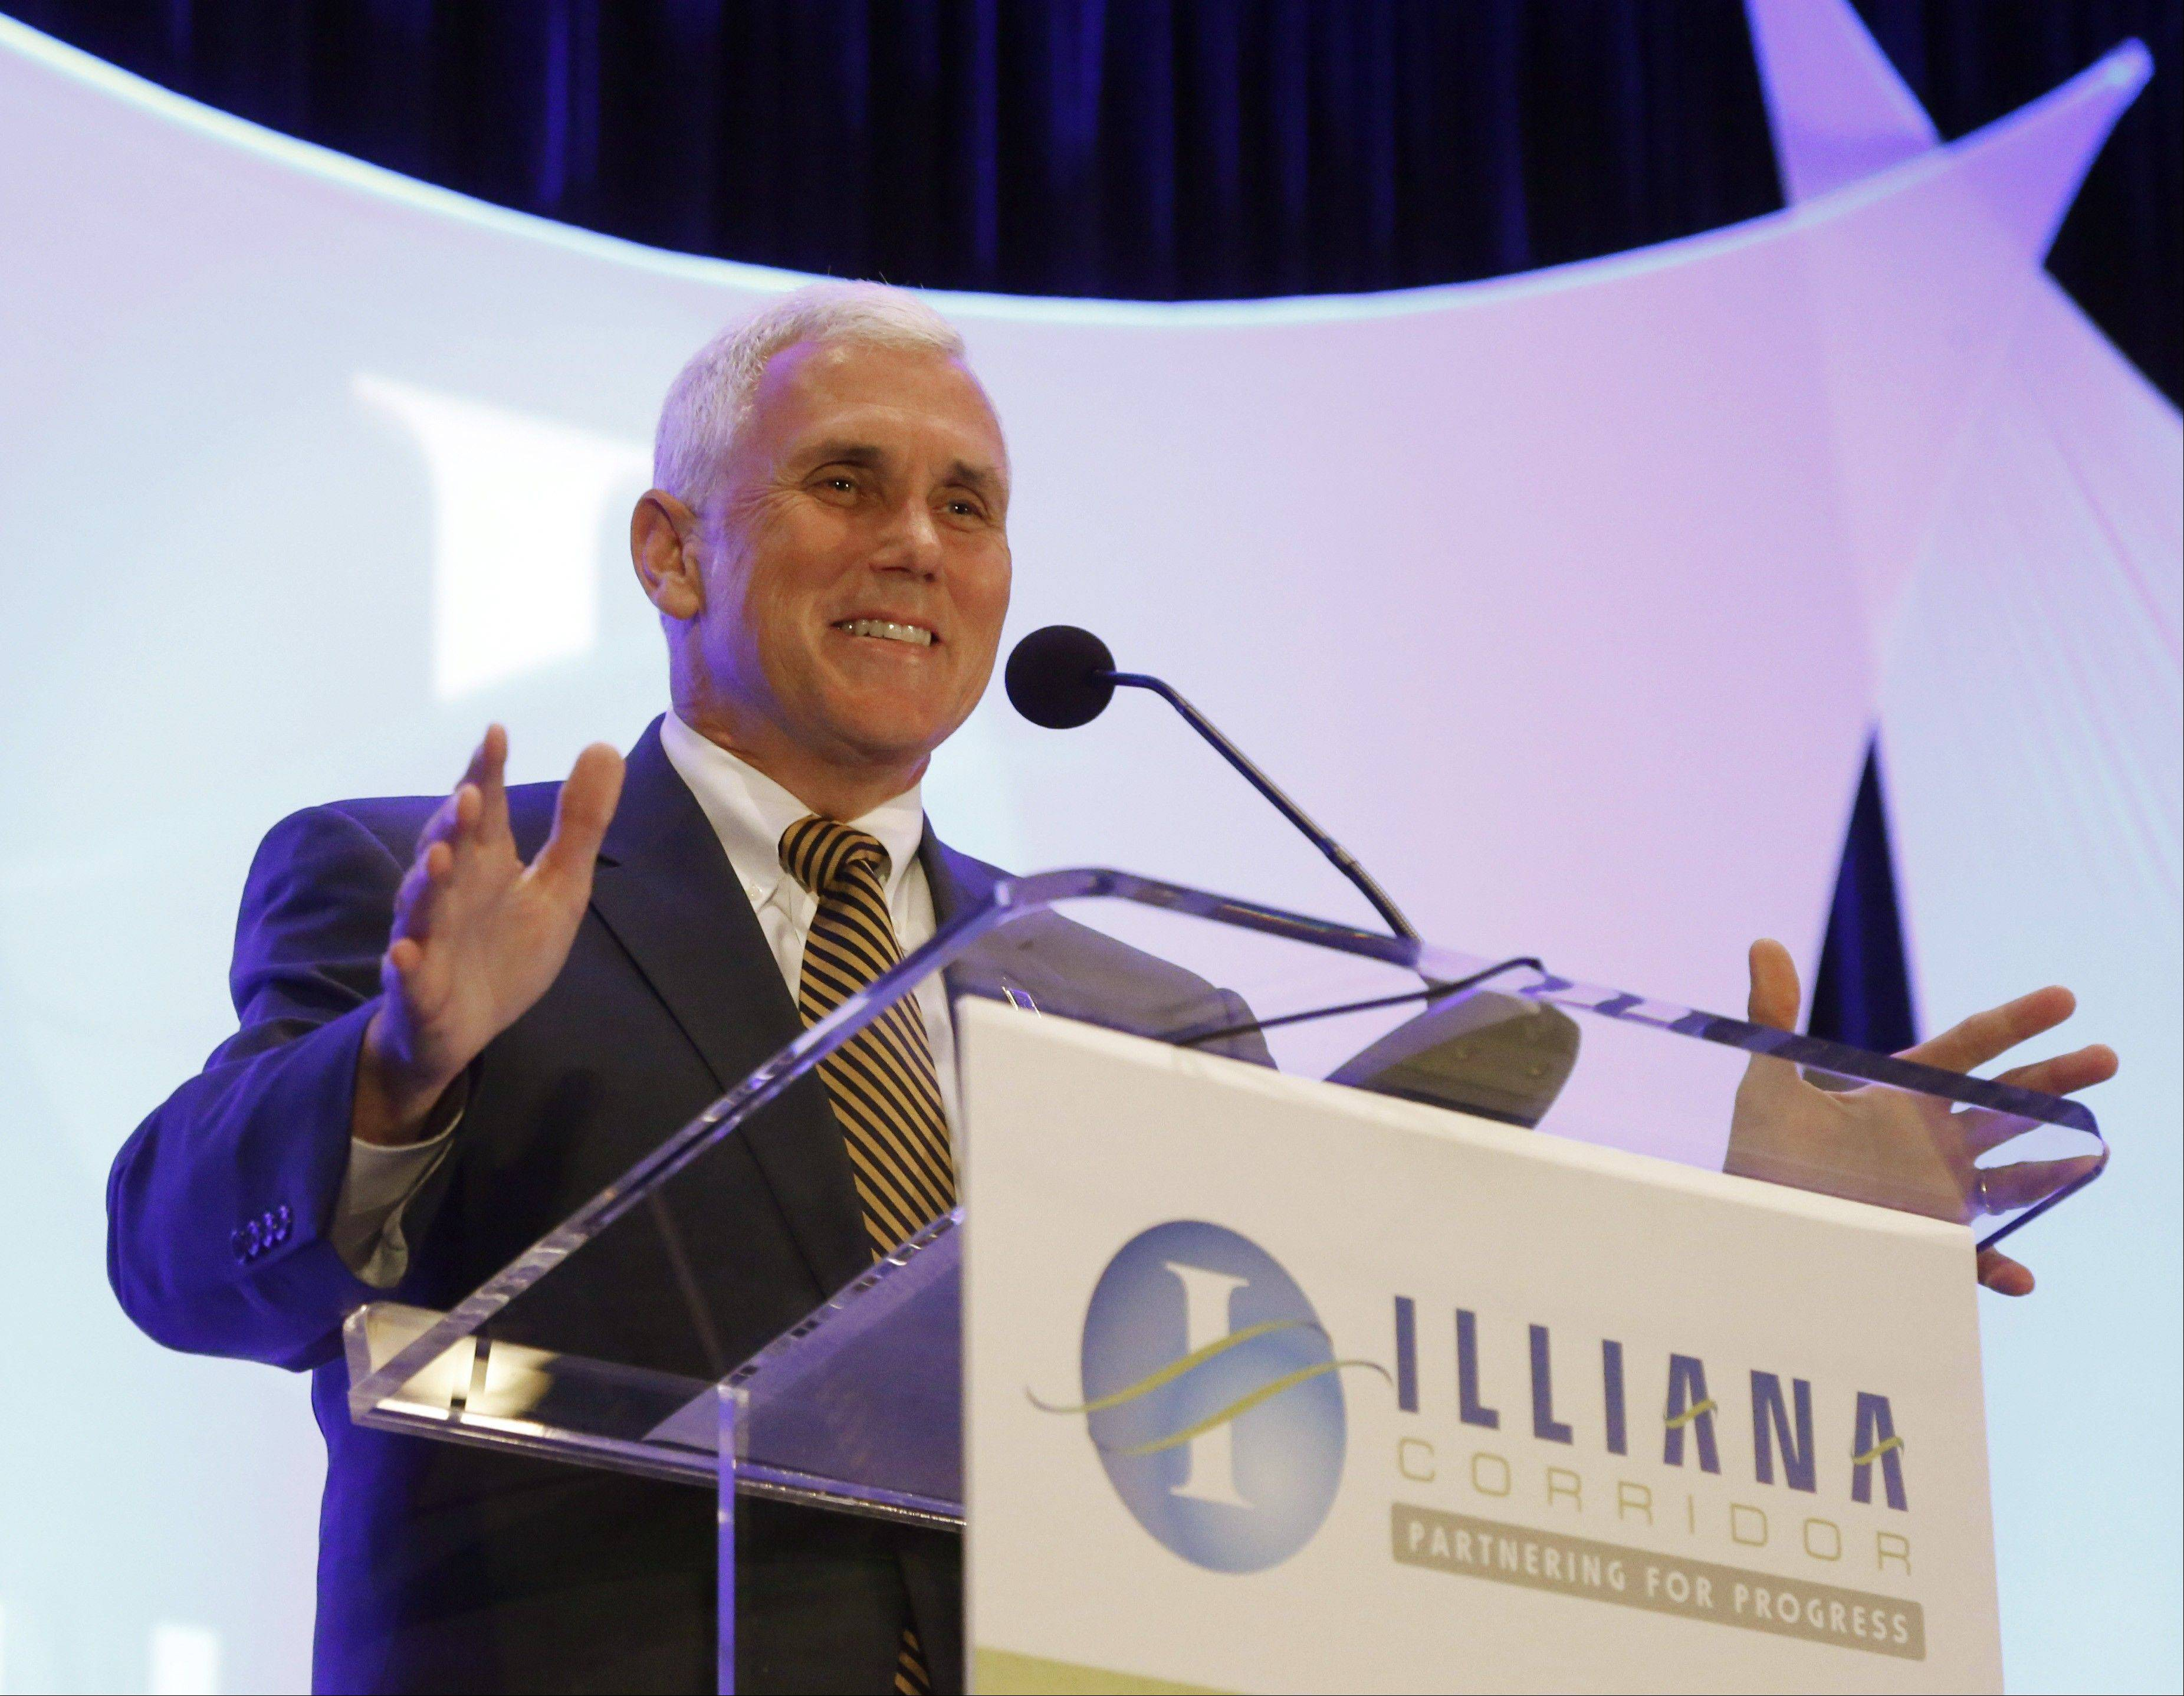 Indiana Gov. Mike Pence addresses the Illiana Industry Forum on Monday in Rosemont. Pence was joined by Illinois Gov. Pat Quinn at the event to promote a planned 47-mile expressway aimed at relieving traffic into the Chicago area.